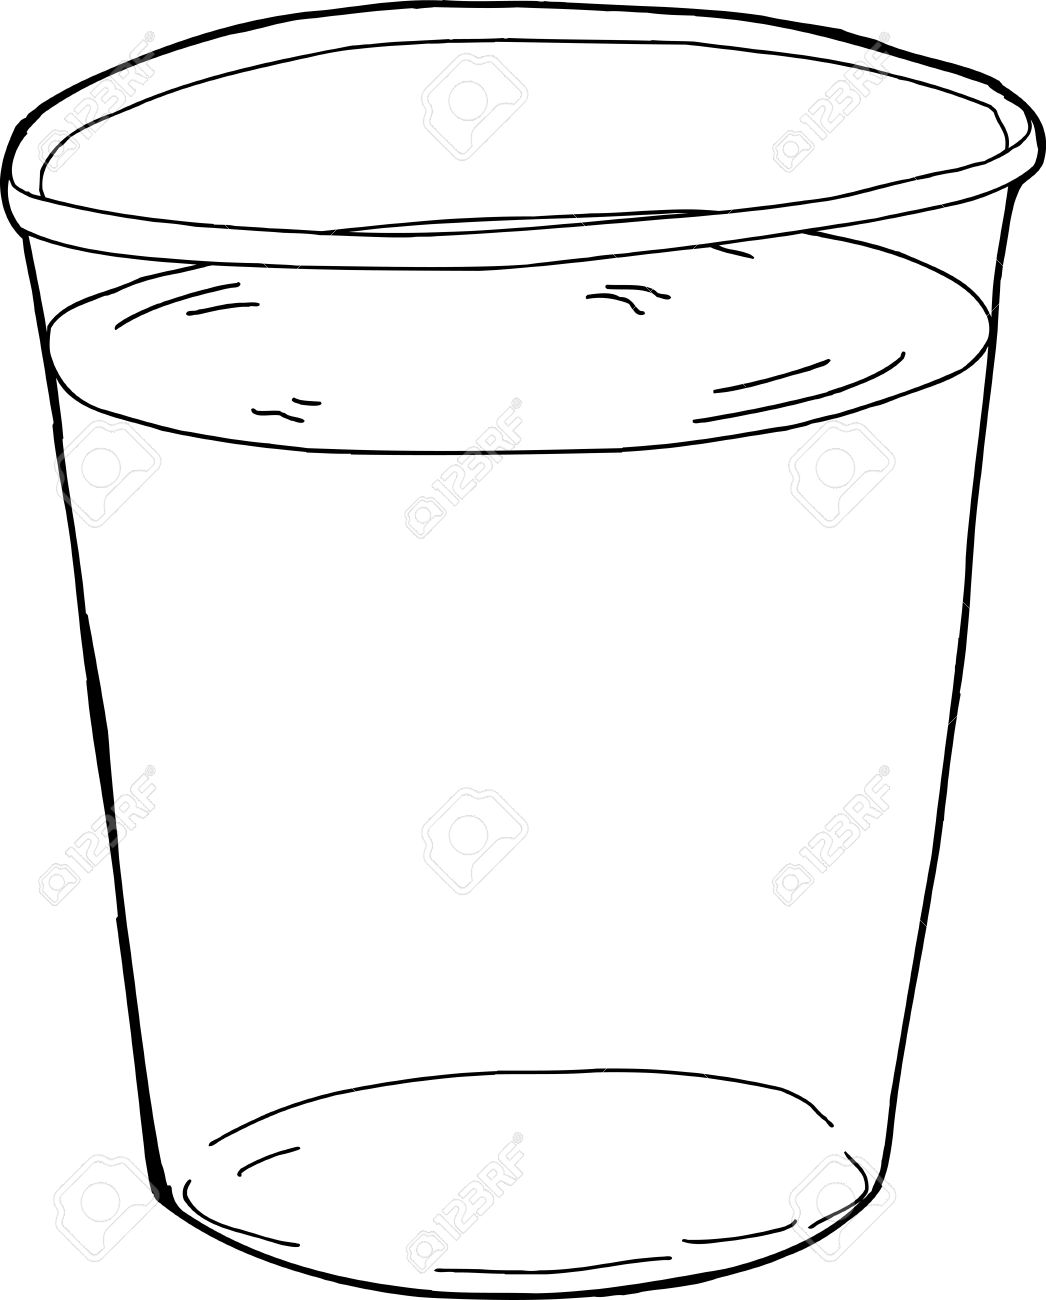 how to draw water cartoon